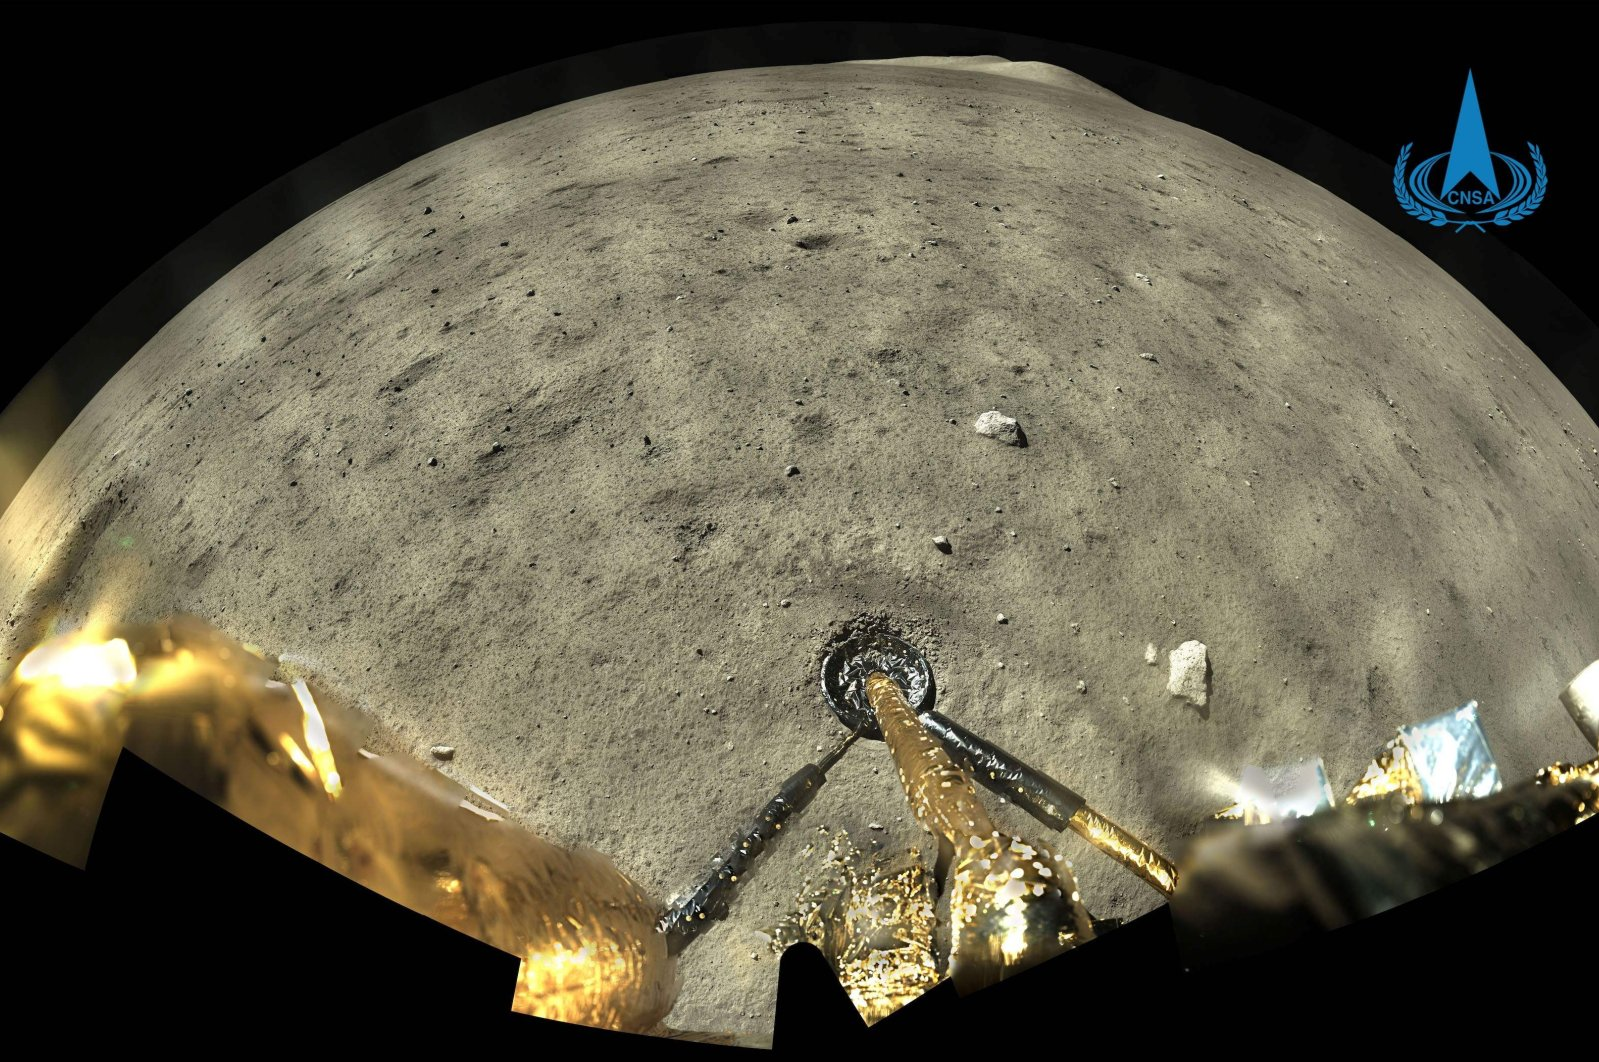 An image of the moon's surface taken by the panoramic camera aboard Chang'e-5 is seen in this picture taken on Dec. 1, 2020. (Photo courtesy of China National Space Administration (CNSA) via China News Service (CNS)/AFP)